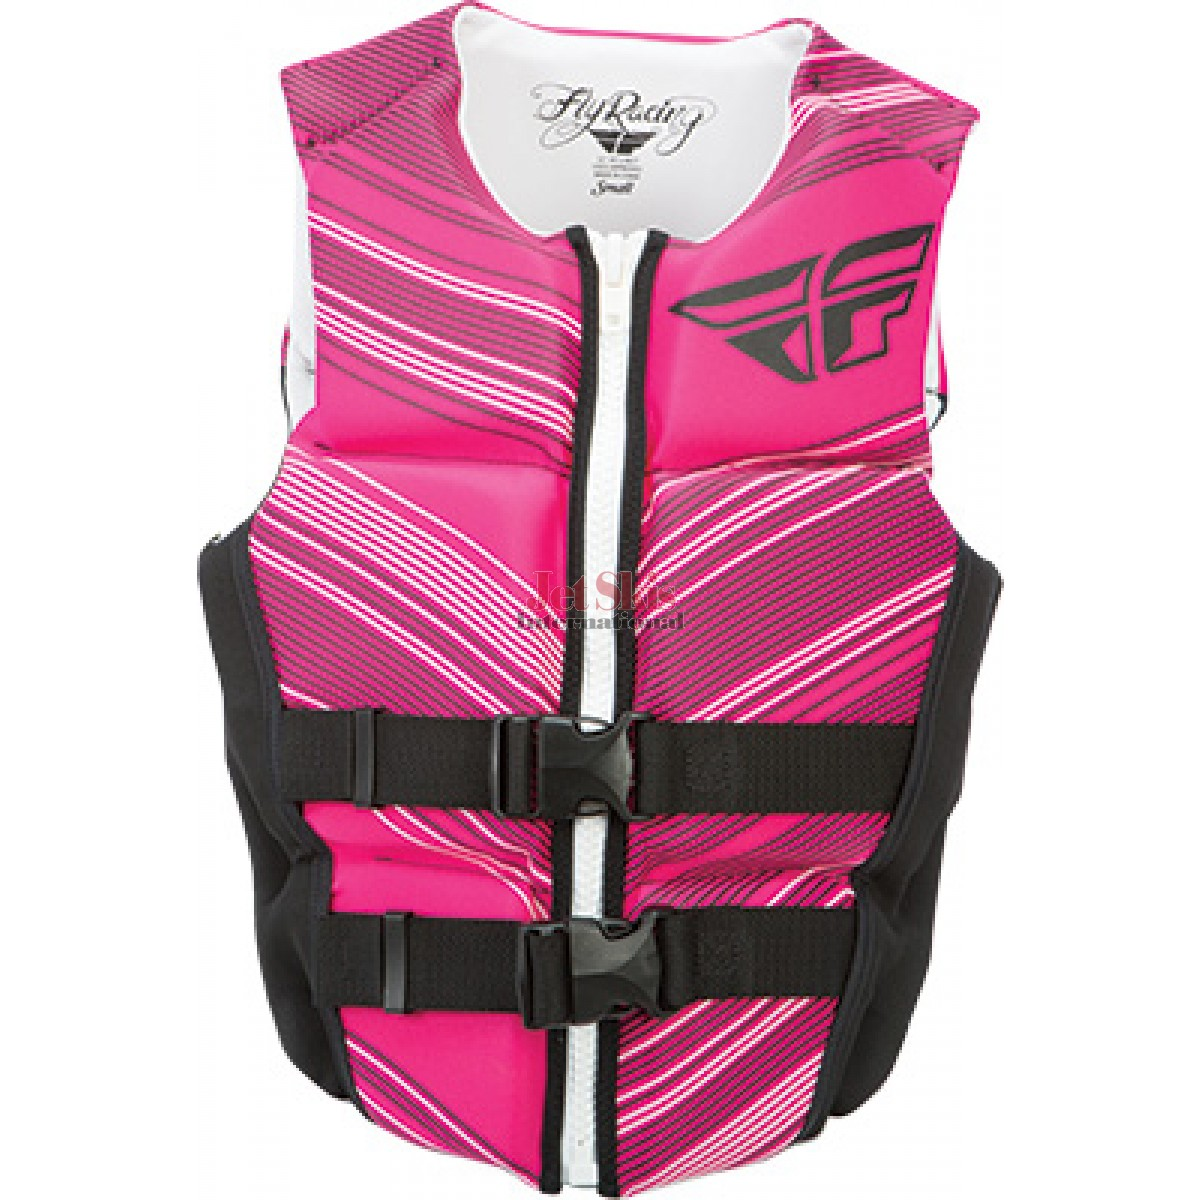 Life jackets for women